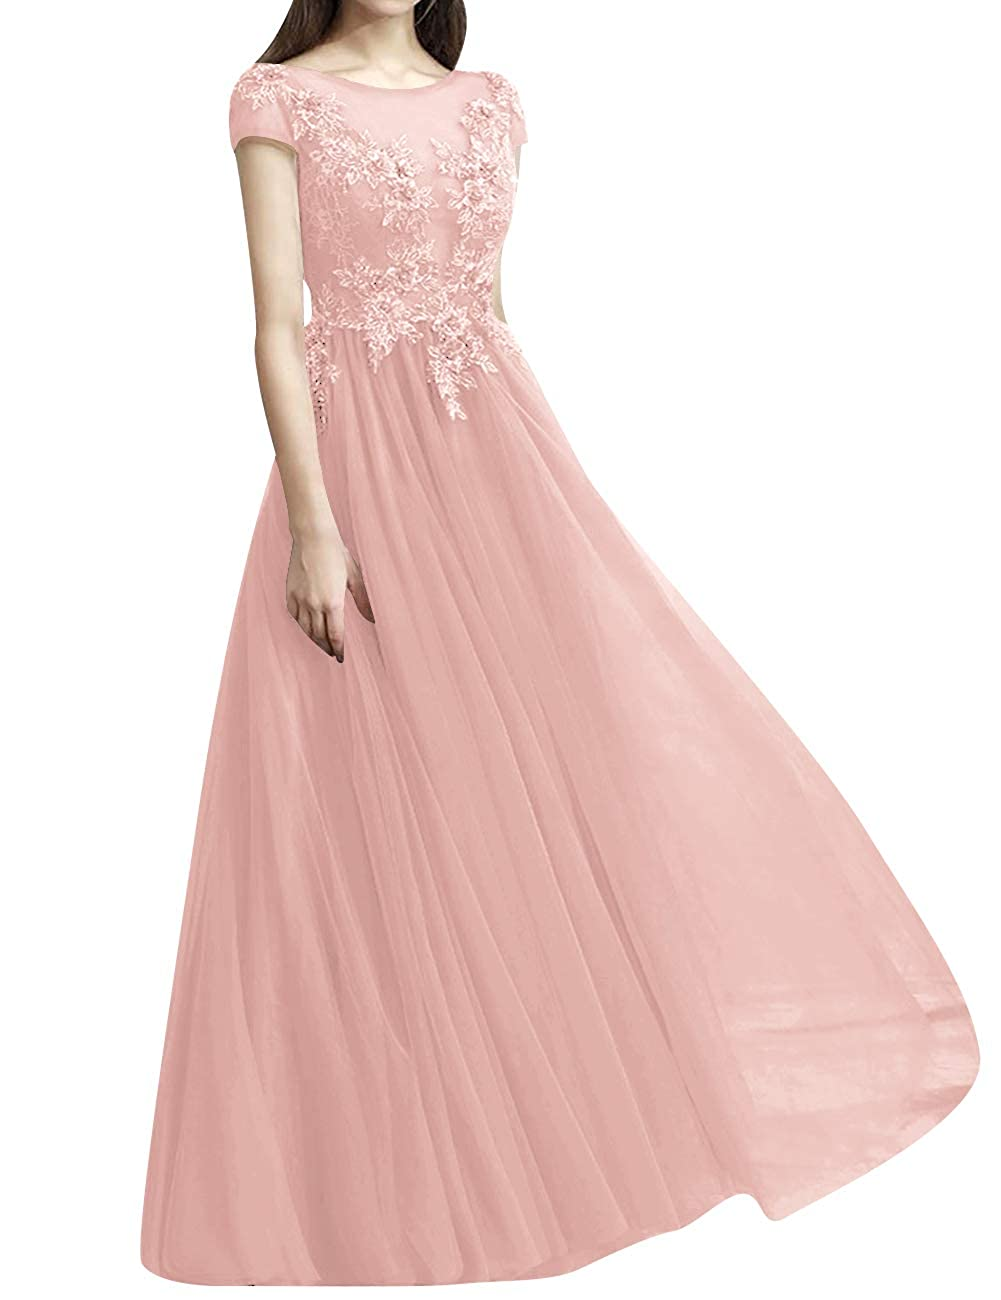 Pink ASBridal Prom Dresses Long Evening Dress Short Sleeve Tulle Prom Evening Gowns Formal Party Dress